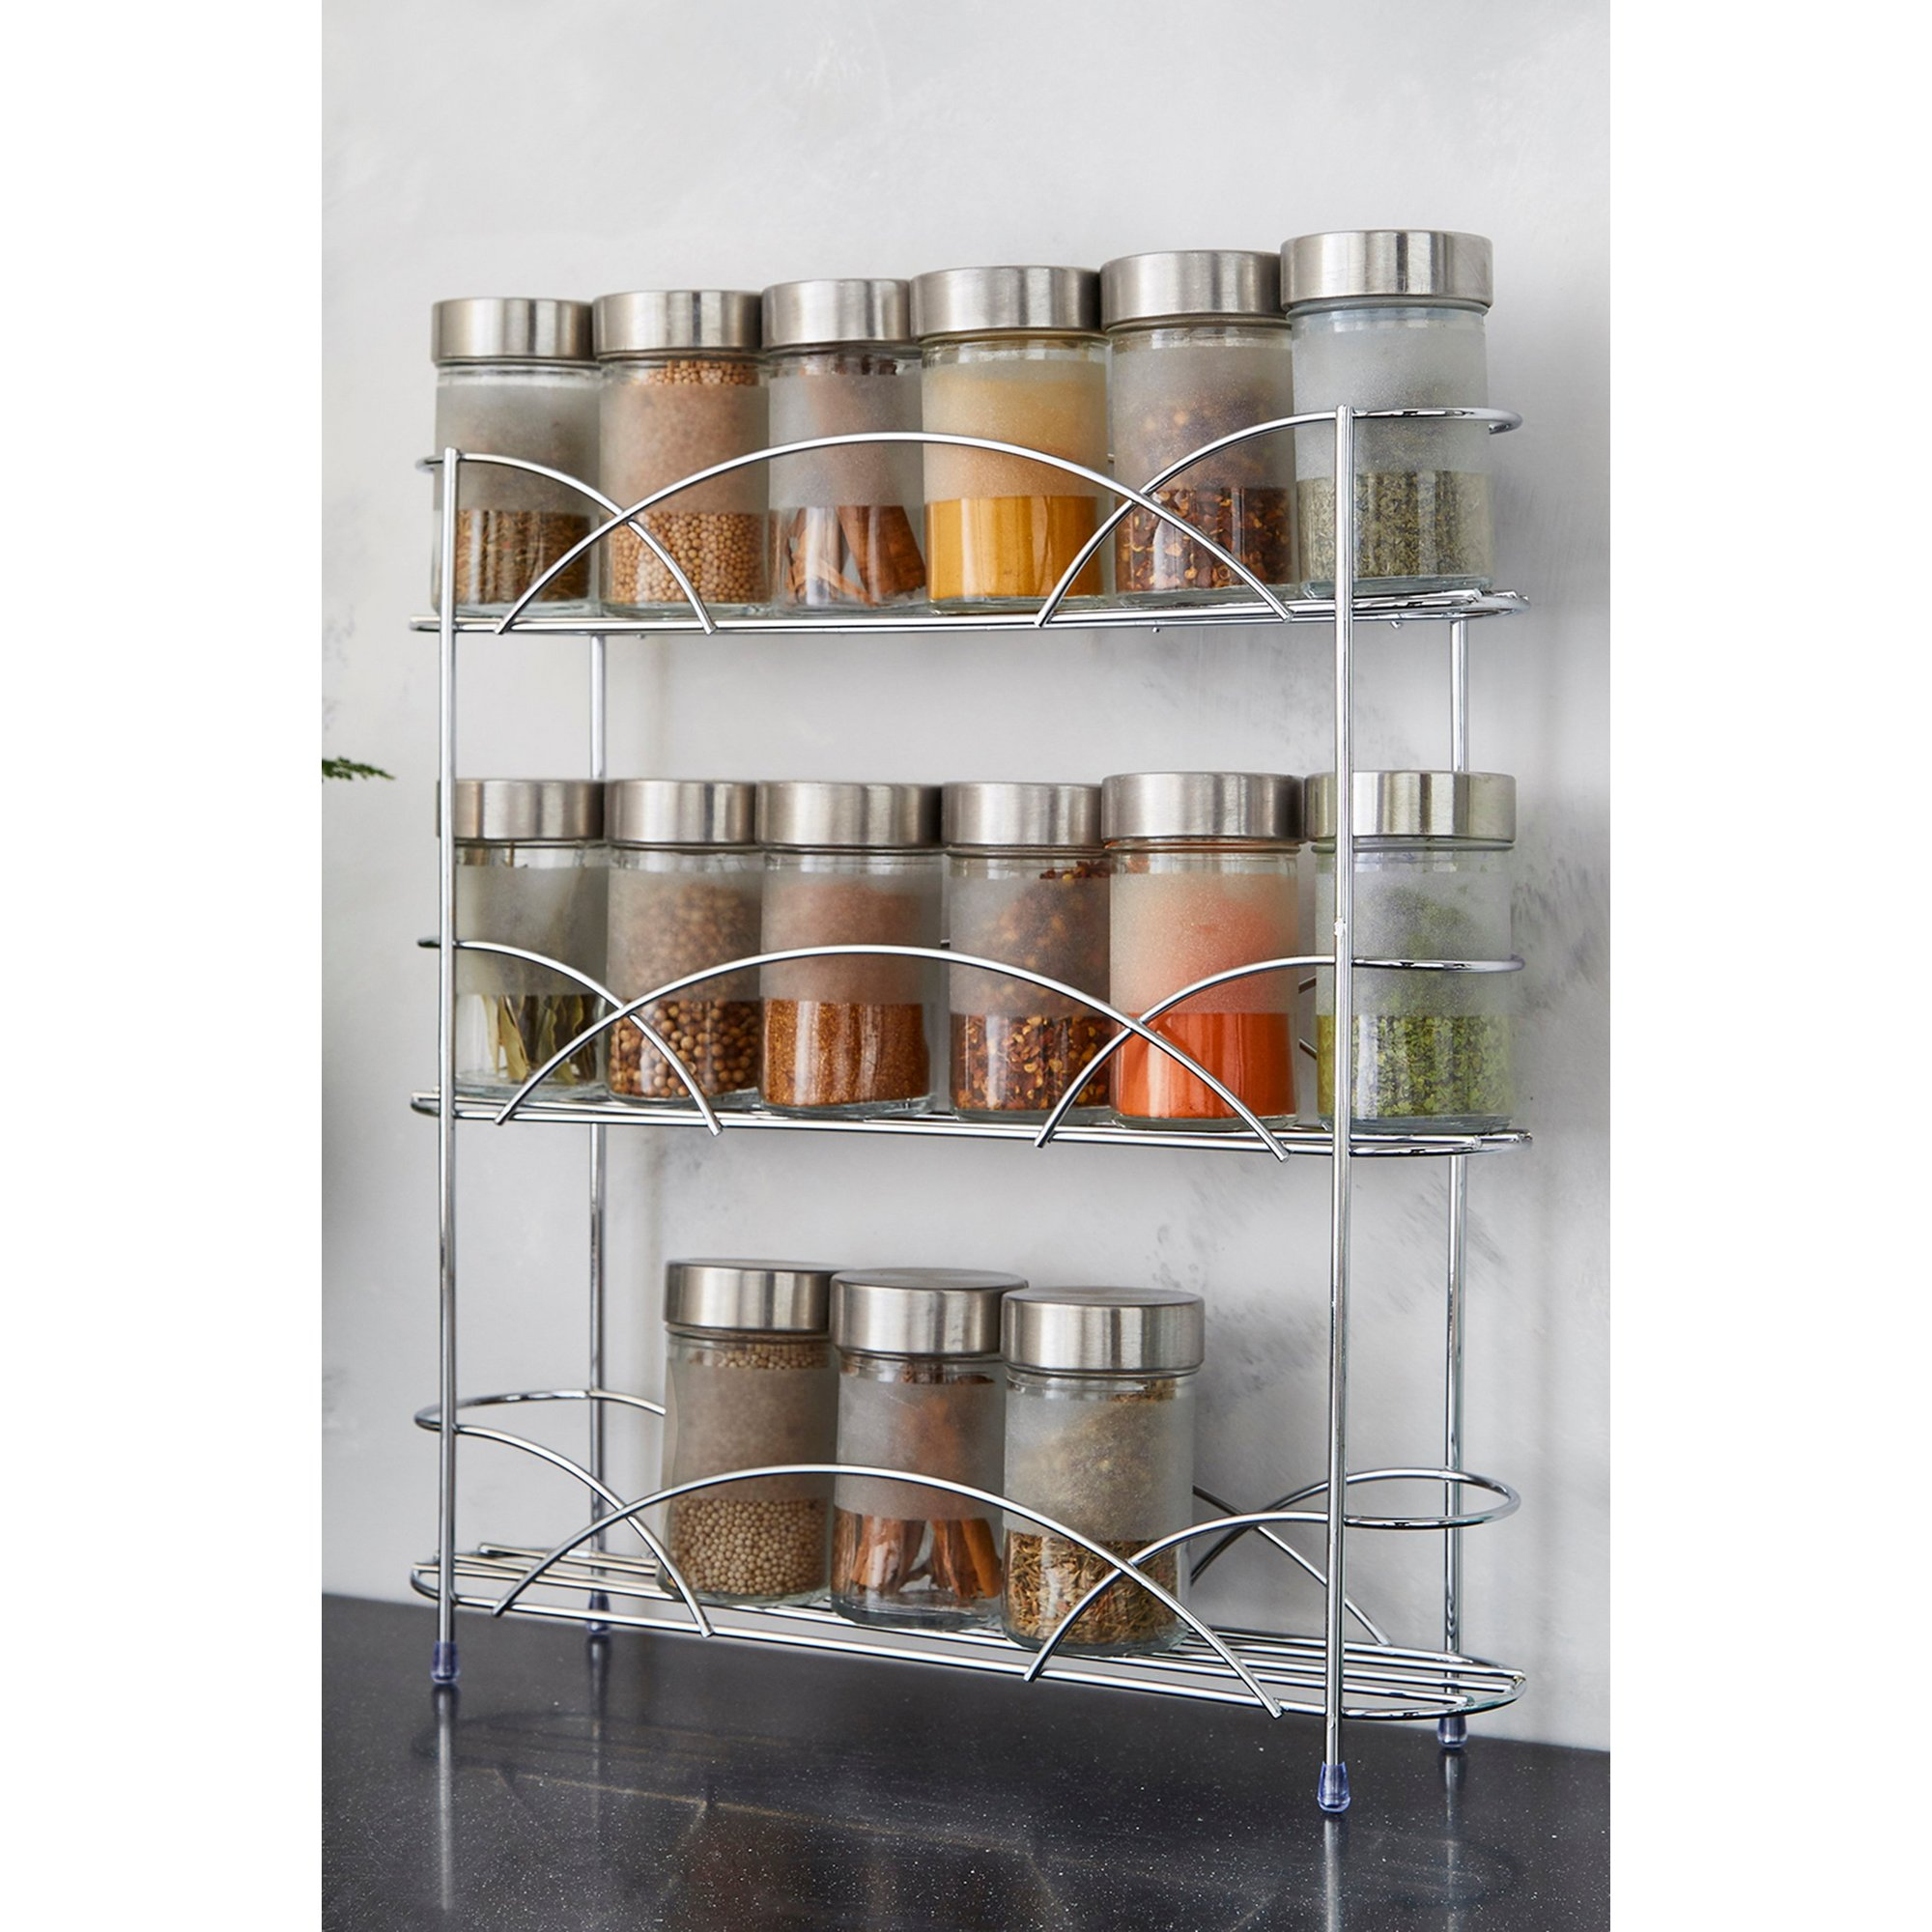 Image of Free Standing Spice Rack